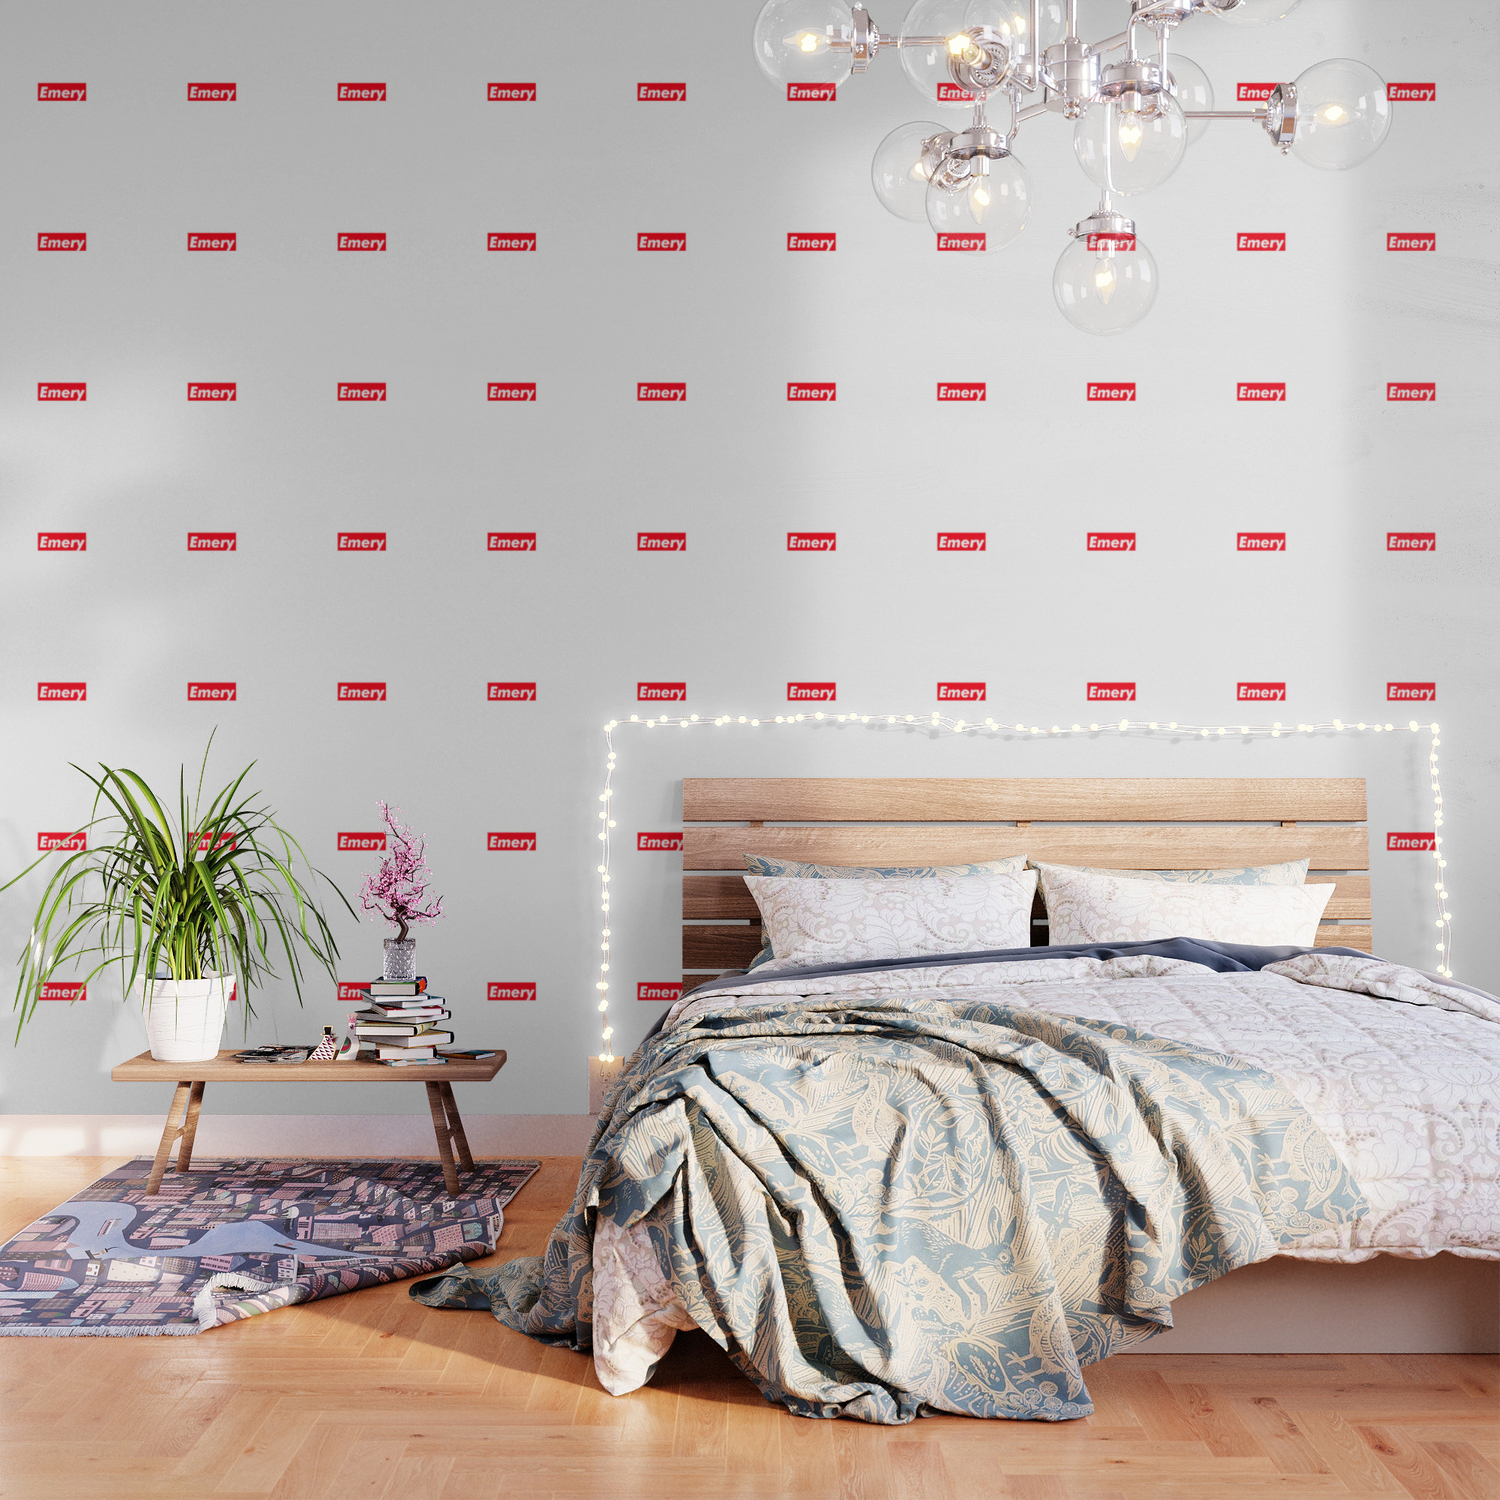 Emery Wallpaper by kennethswater Society6 1500x1500